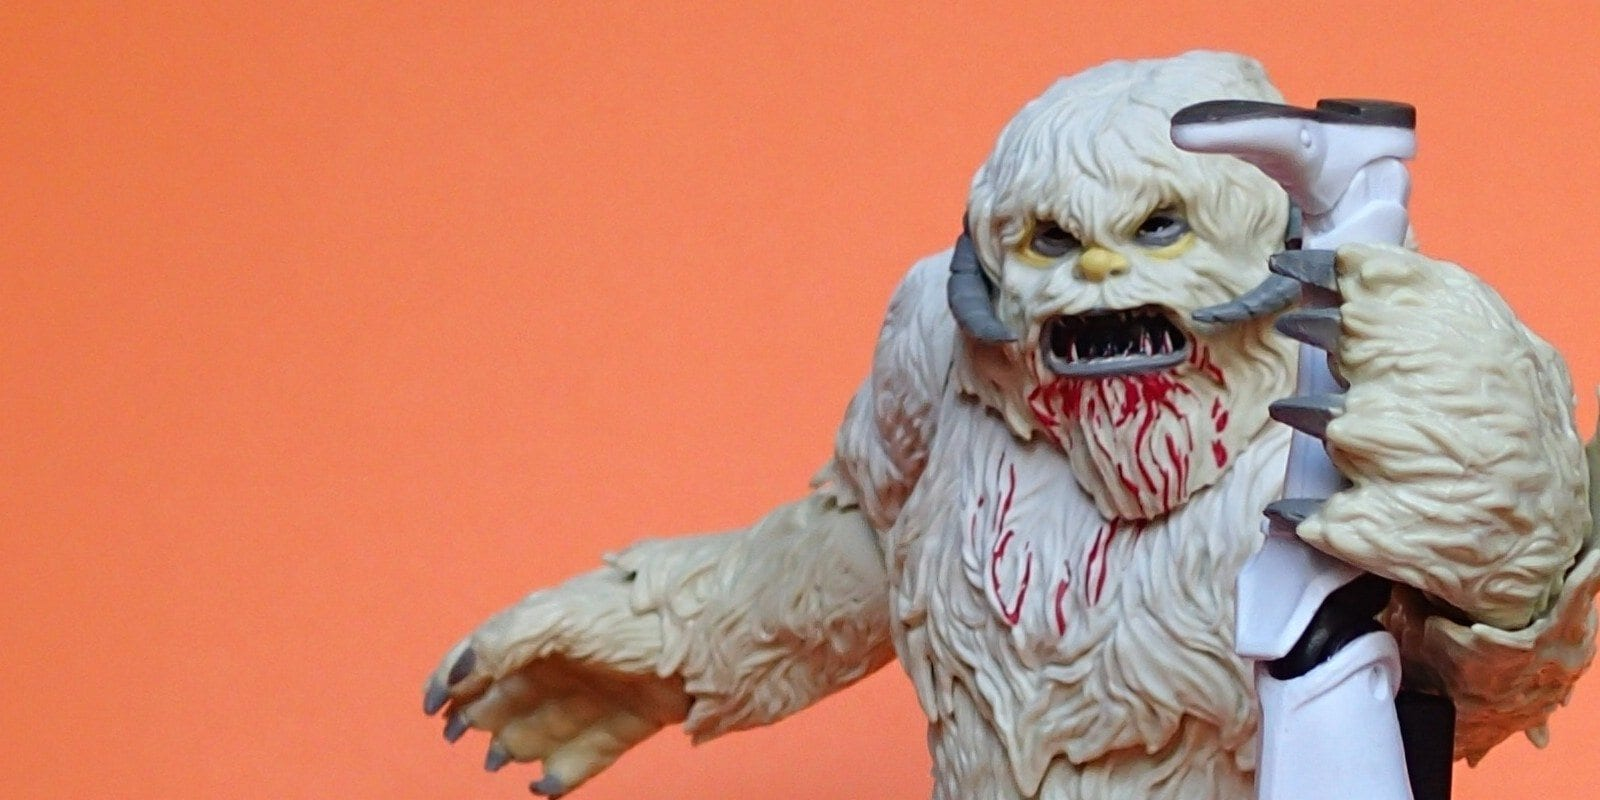 Photographic Plastic: Wampa